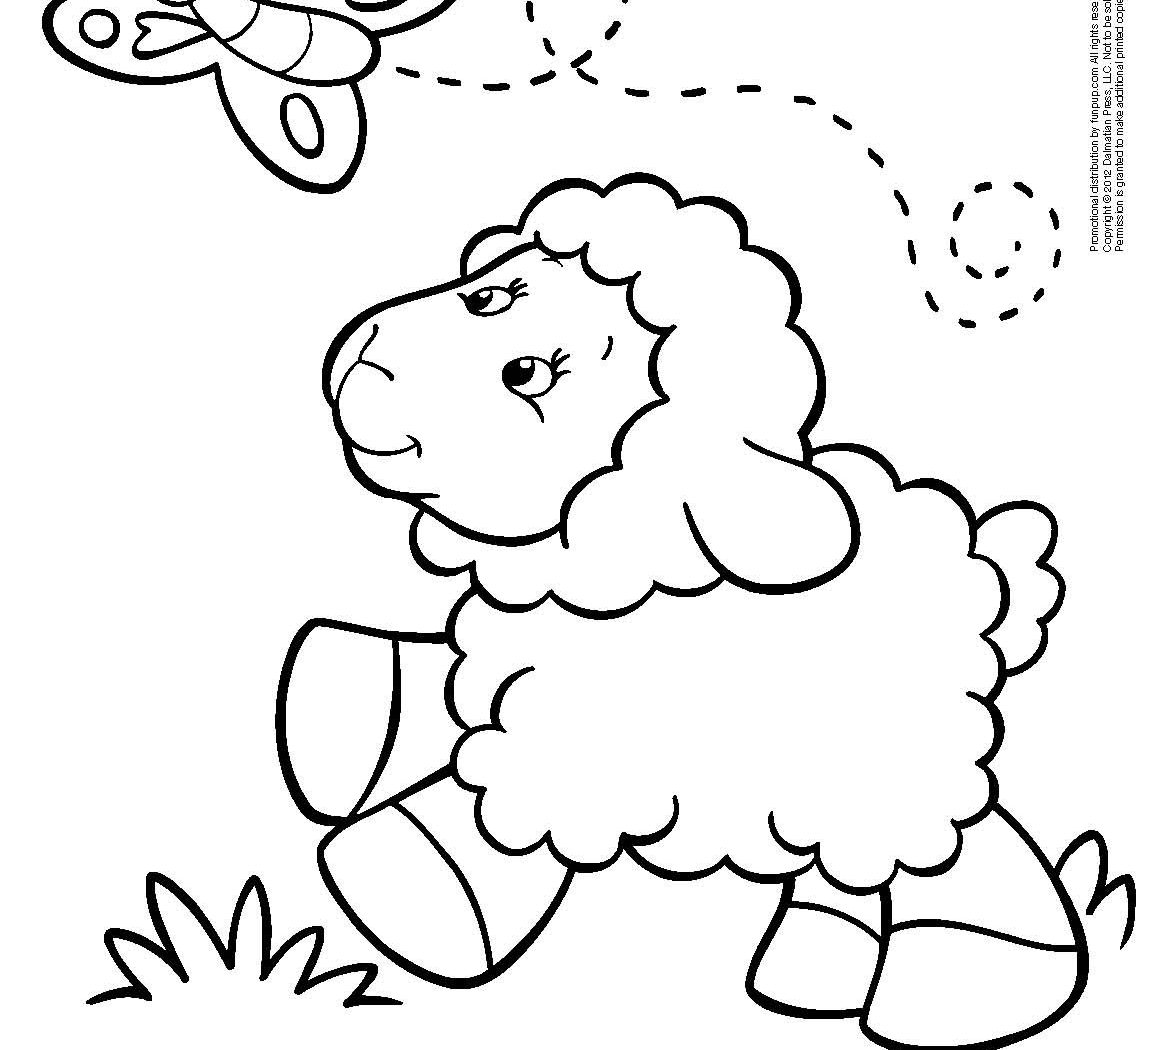 free sheep head coloring pages | Sheep Images For Drawing at GetDrawings.com | Free for ...